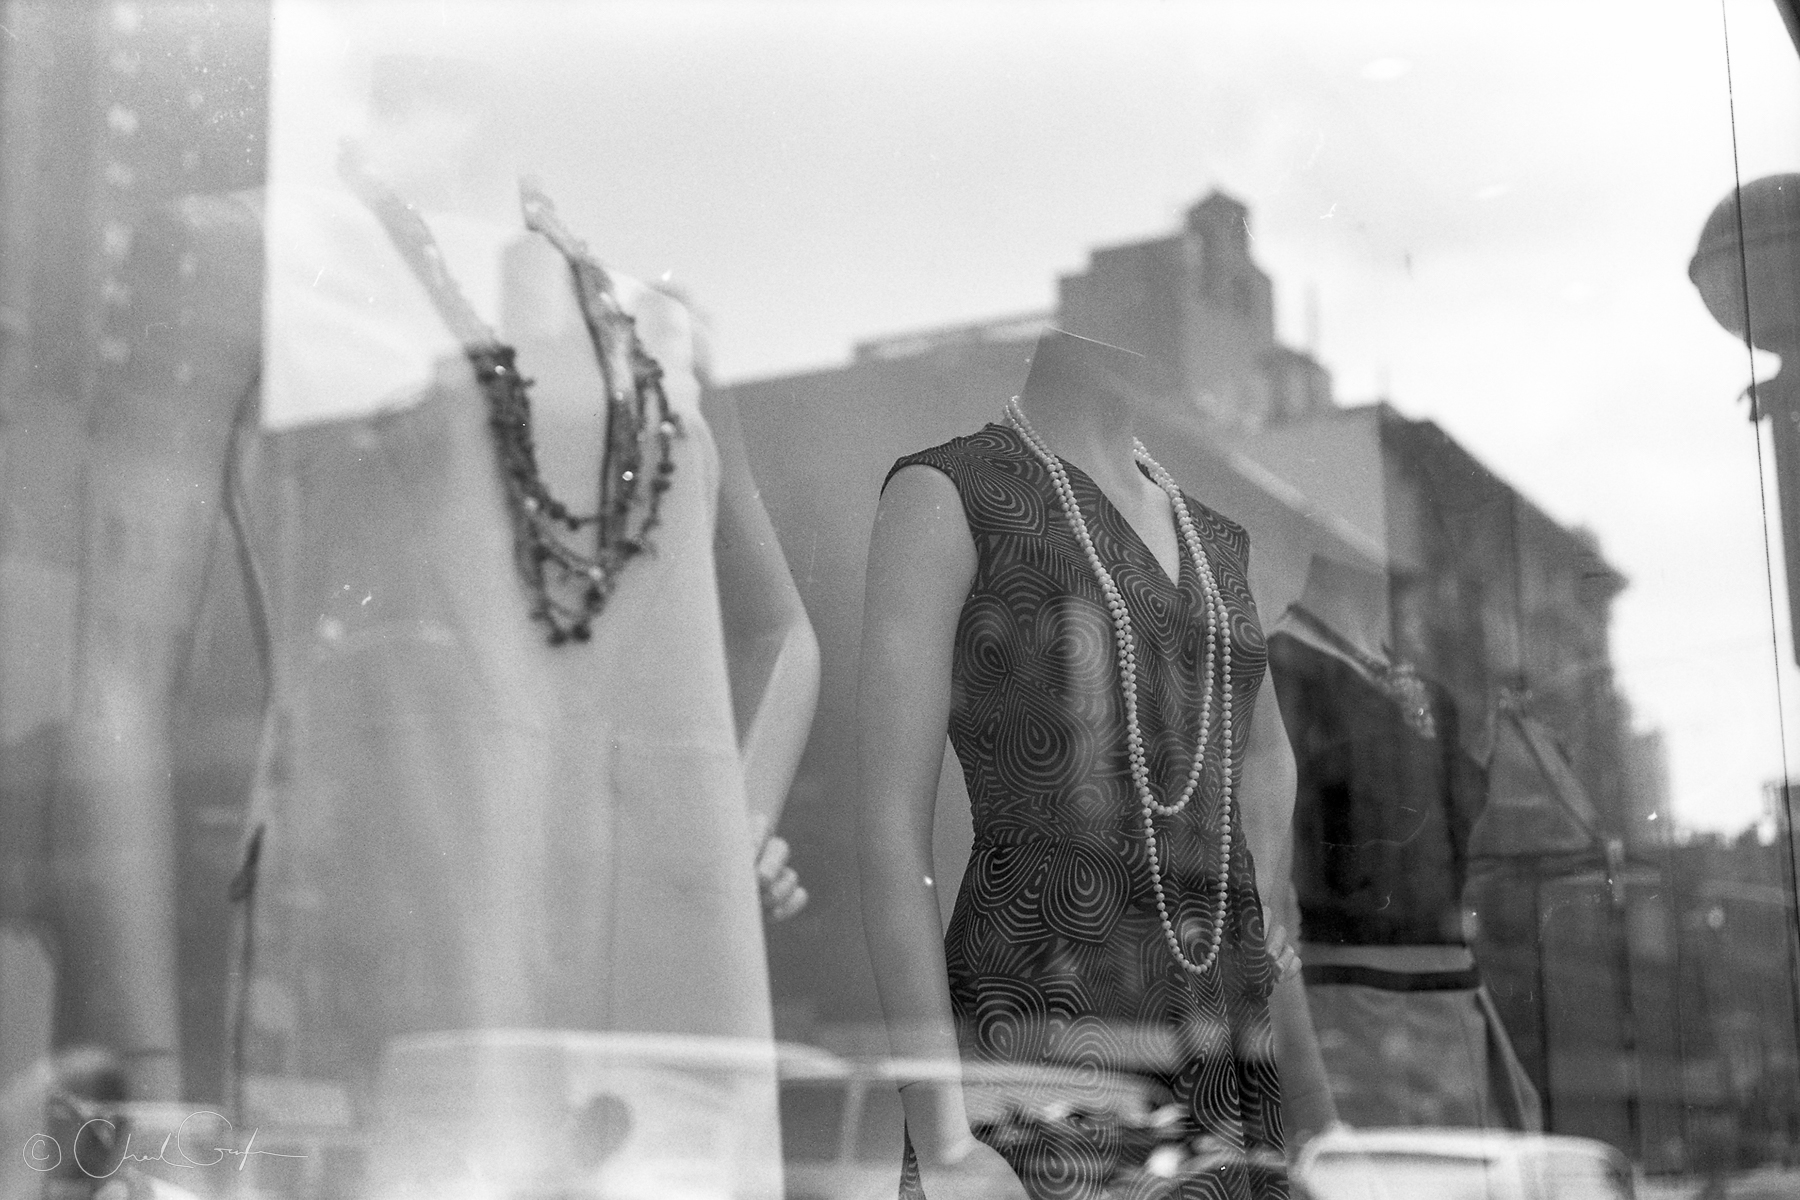 Black and White Window Dressing (Image by Chad Gayle)